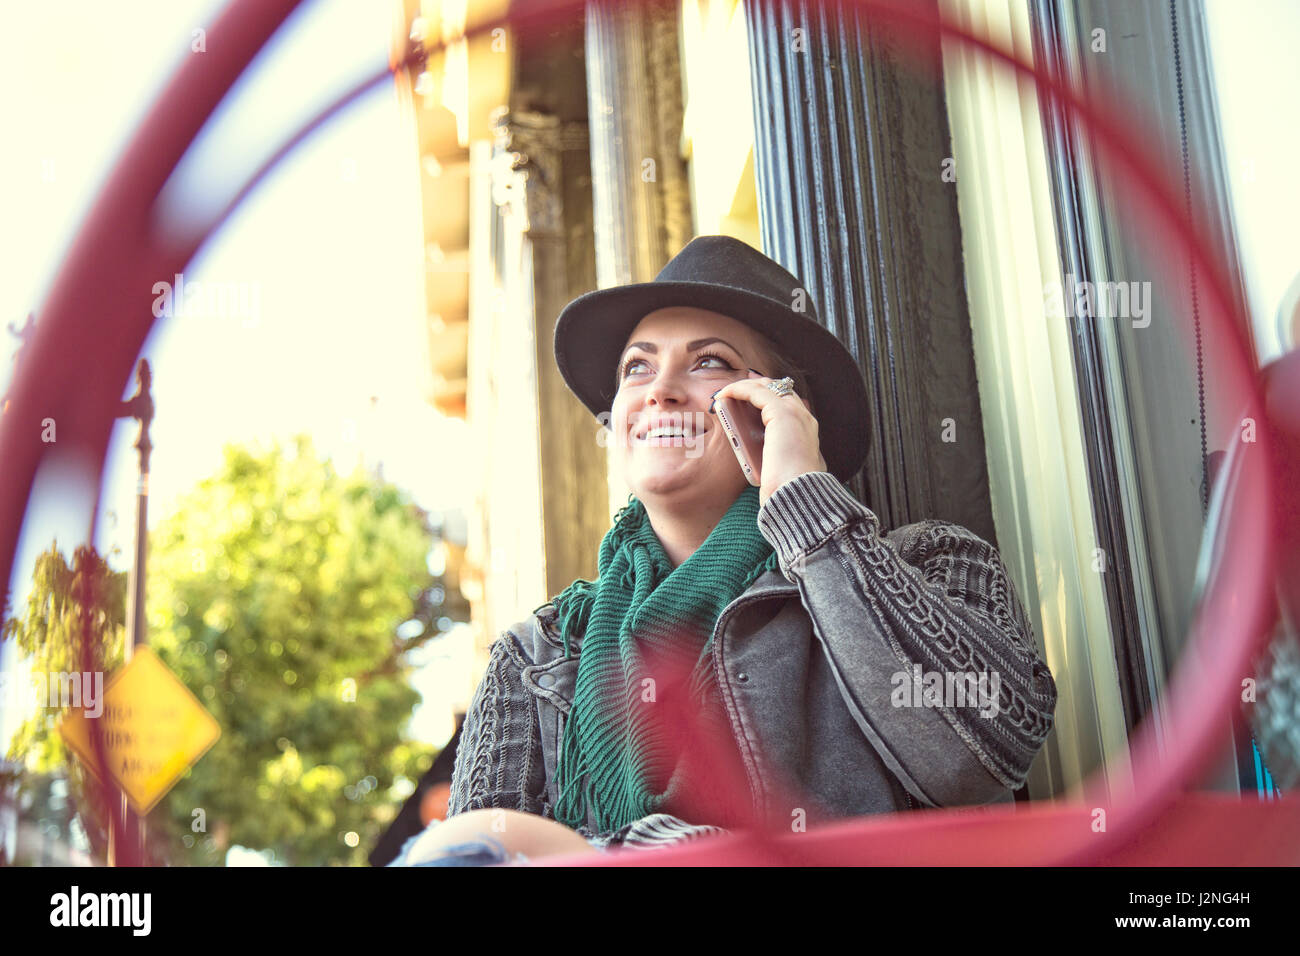 A fashionable 30-something woman smiles and laughs while using a mobile device. - Stock Image